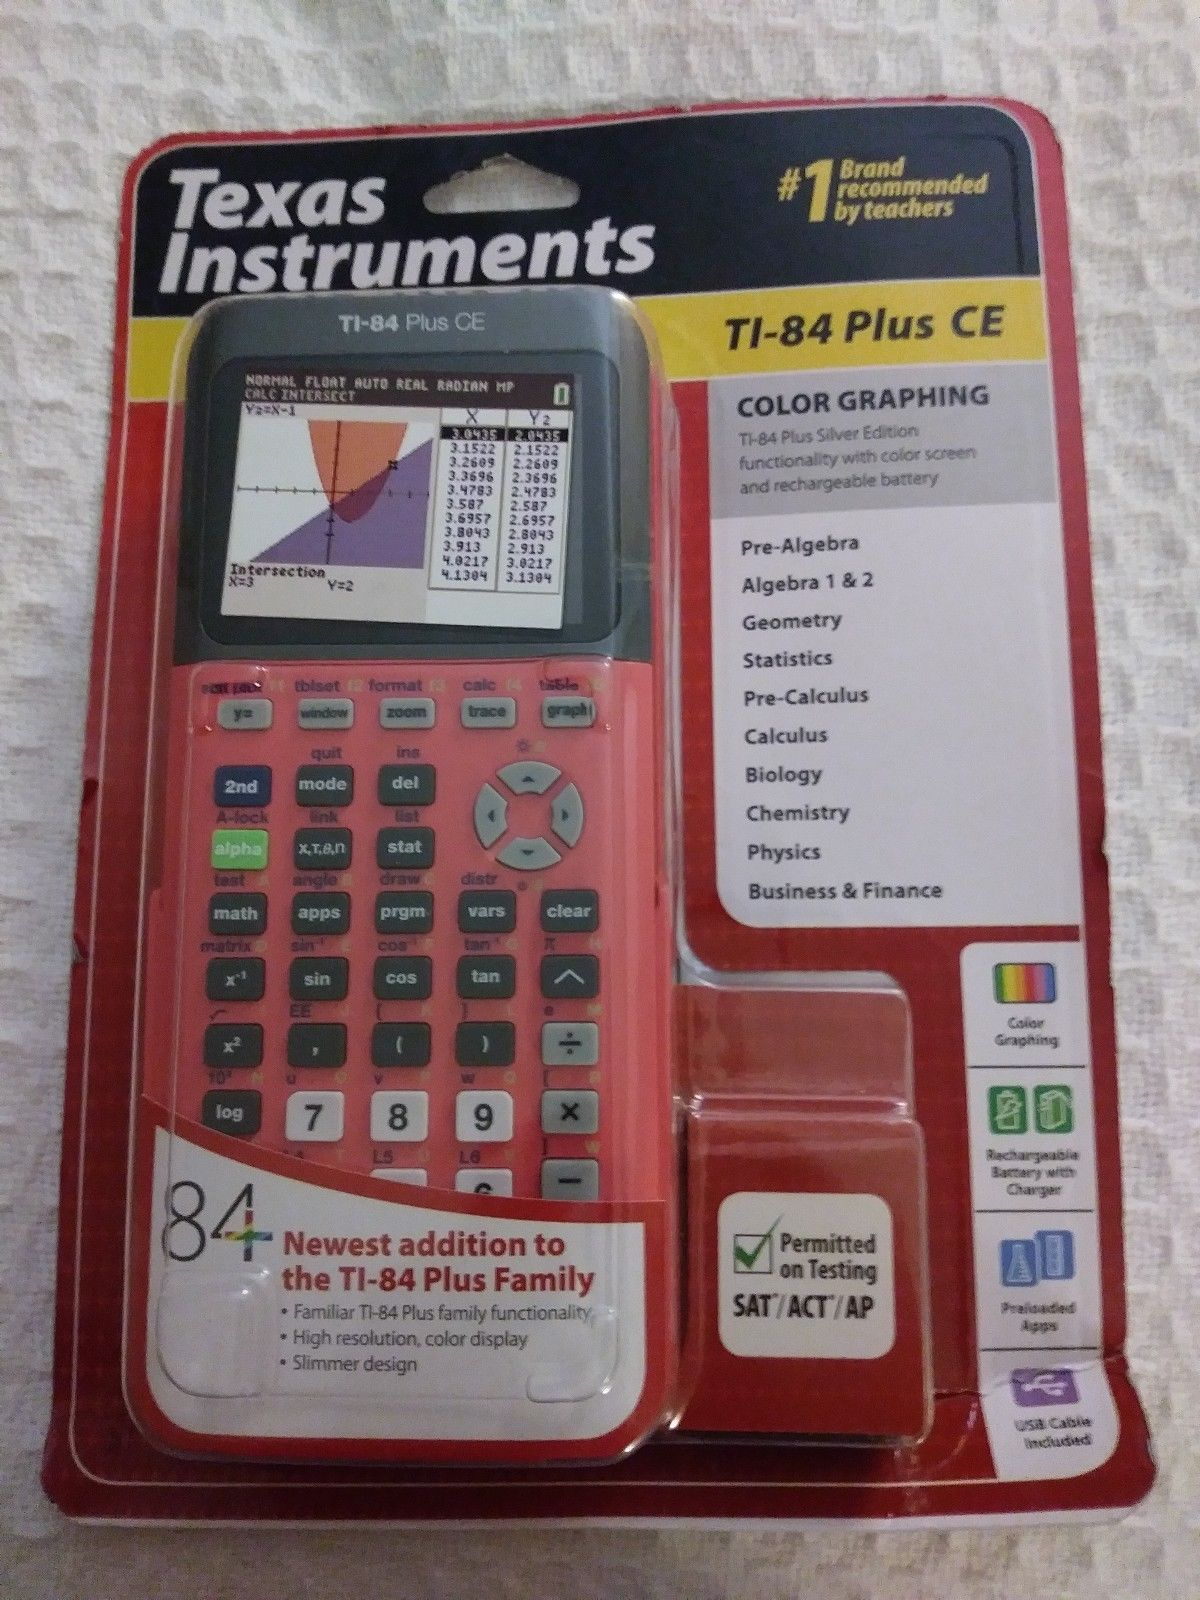 Texas Instruments Ti 84 Plus Ce Color Graphing Calculator